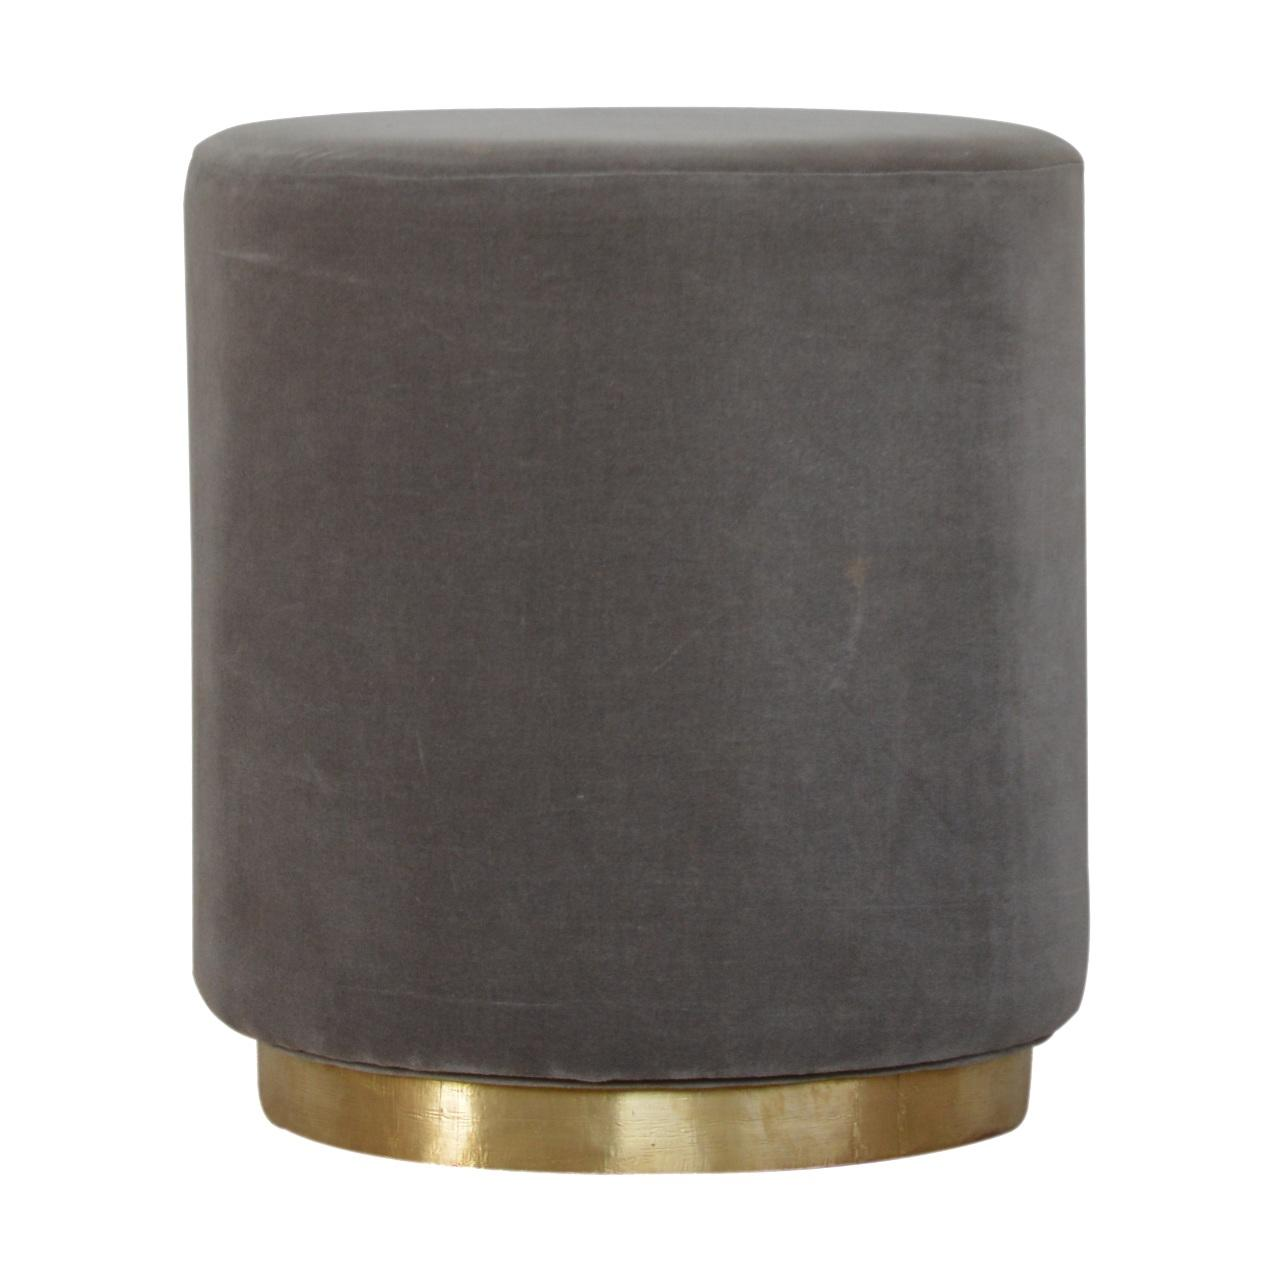 Grey Velvet Footstool with Gold Base